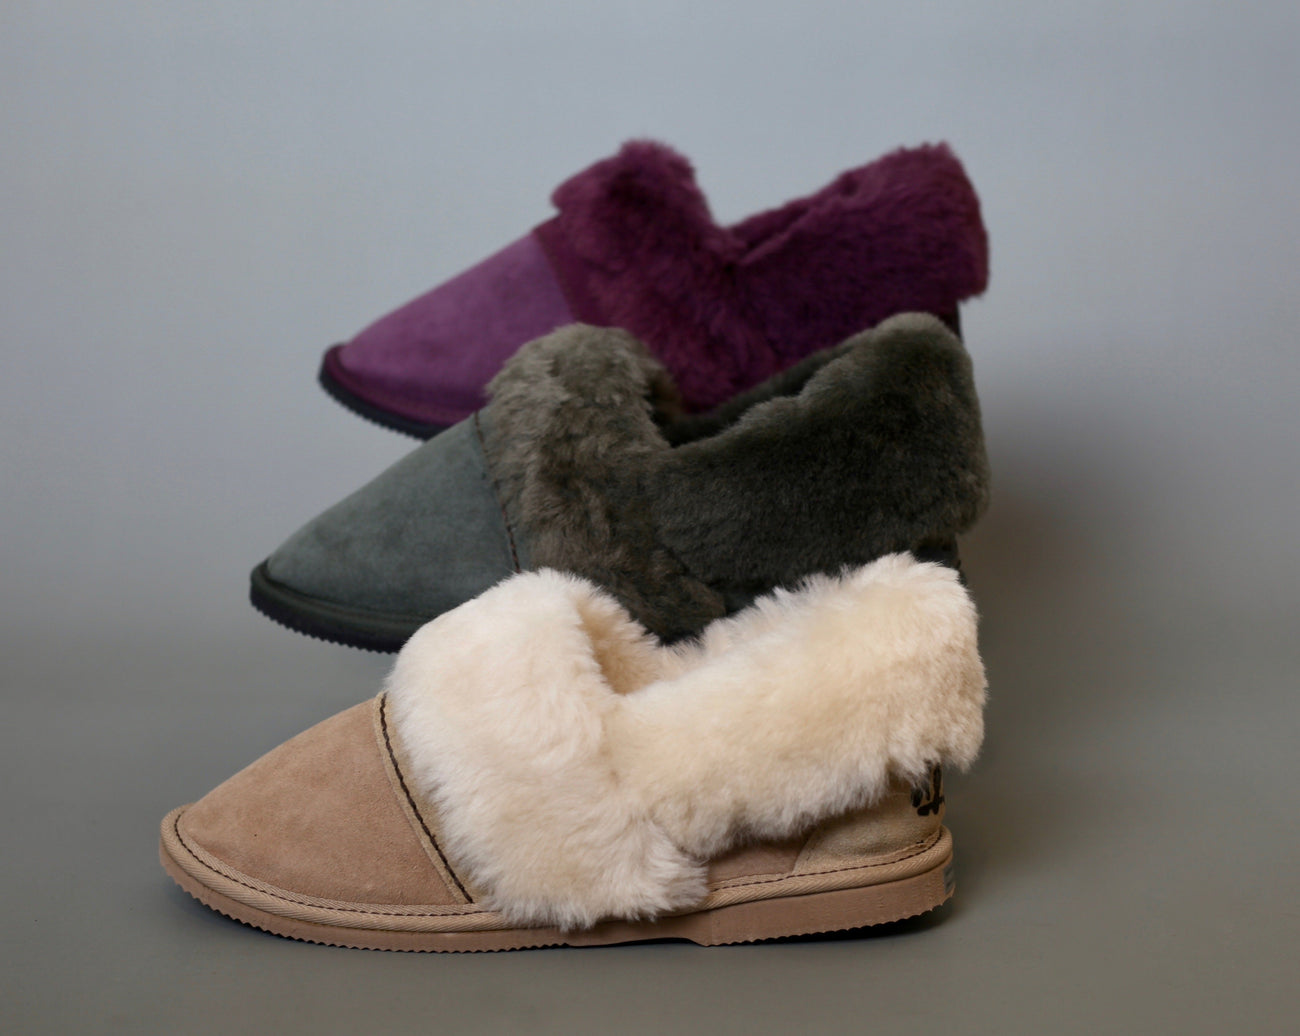 Aussie Uggs, Brindabella - Easy slip-on design. Genuine double face sheepskin. Durable hard rubber/EVA sole. Handmade in Australia